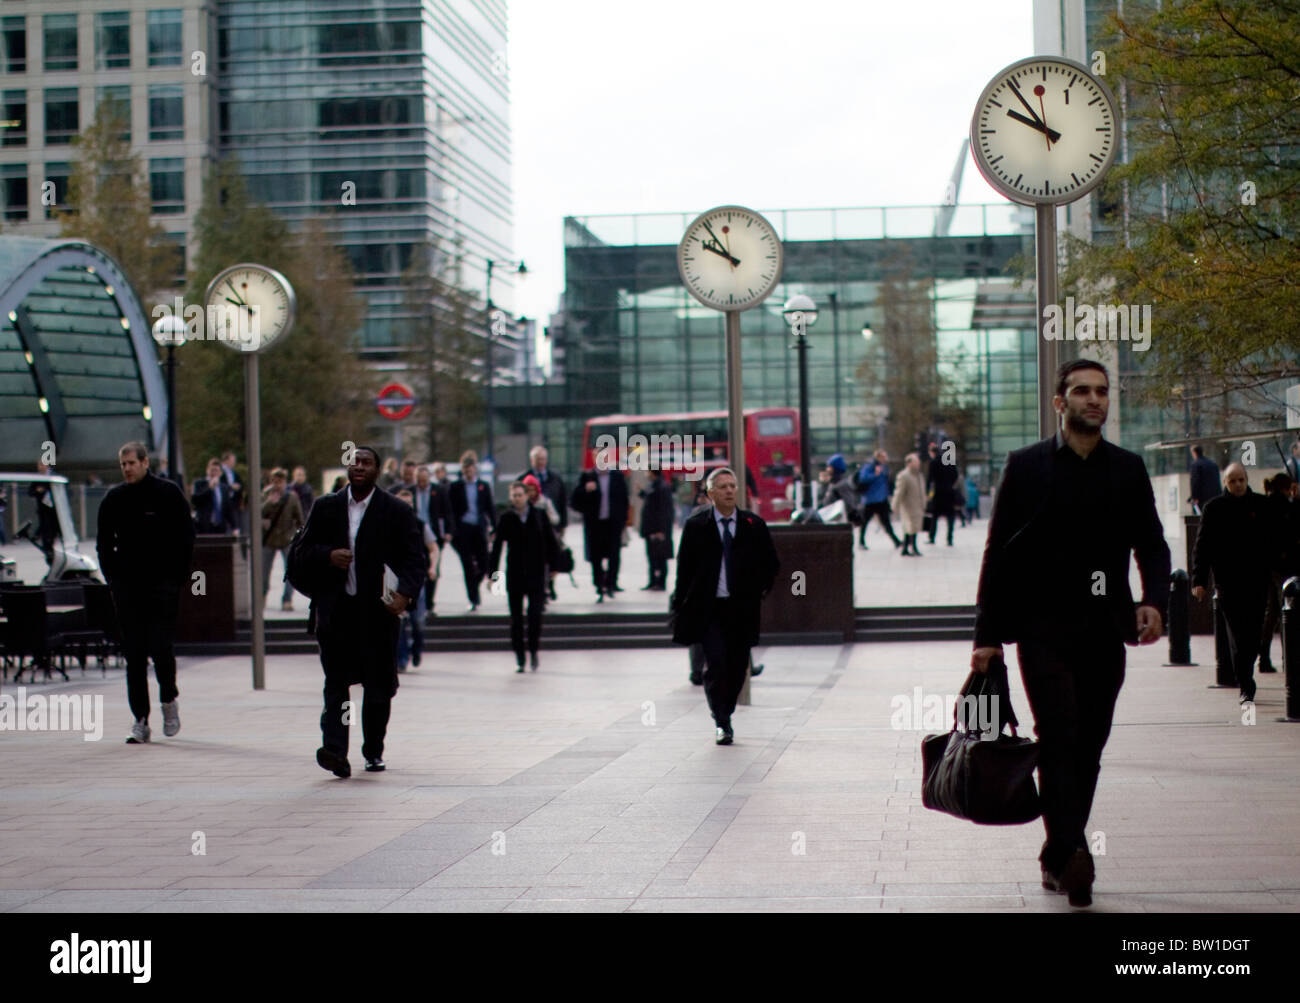 clocks outside canary wharf station with city workers , Six Public Clocks, Konstantin Grcic, Sculpture, Steel, Glass - Stock Image